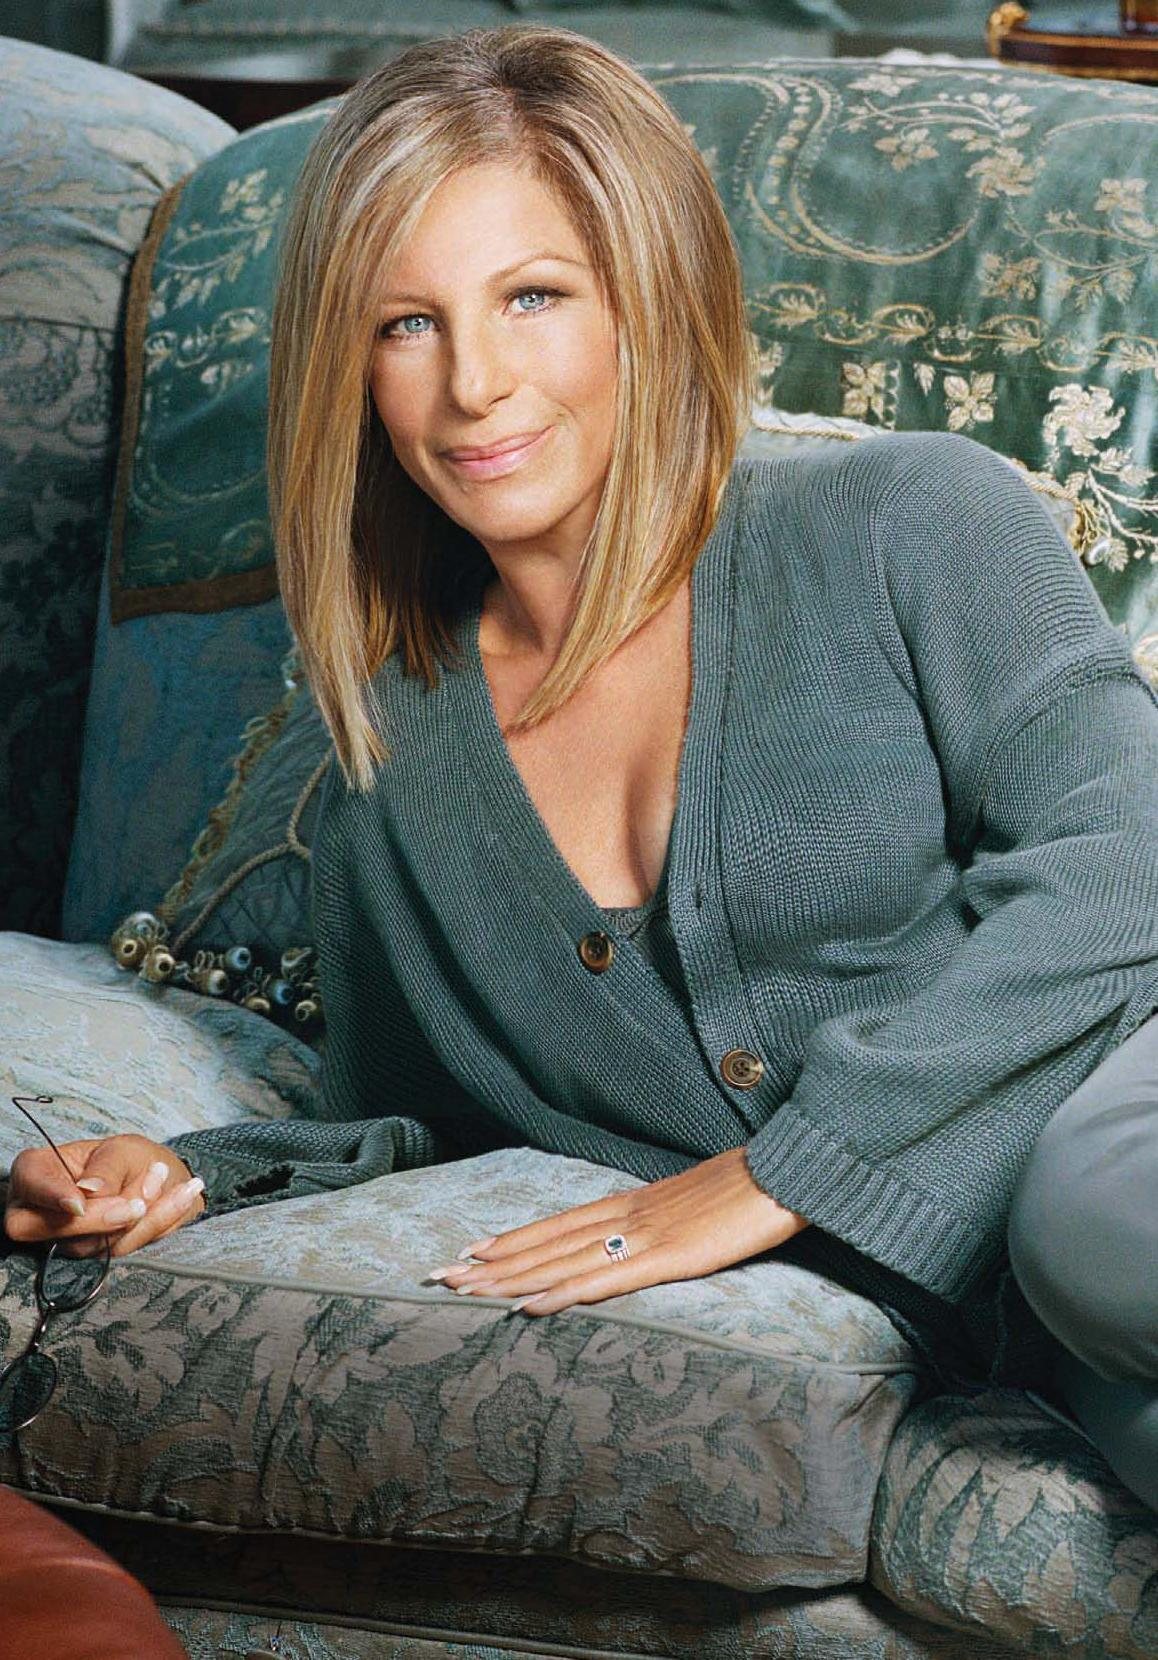 barbra streisand - photo #29